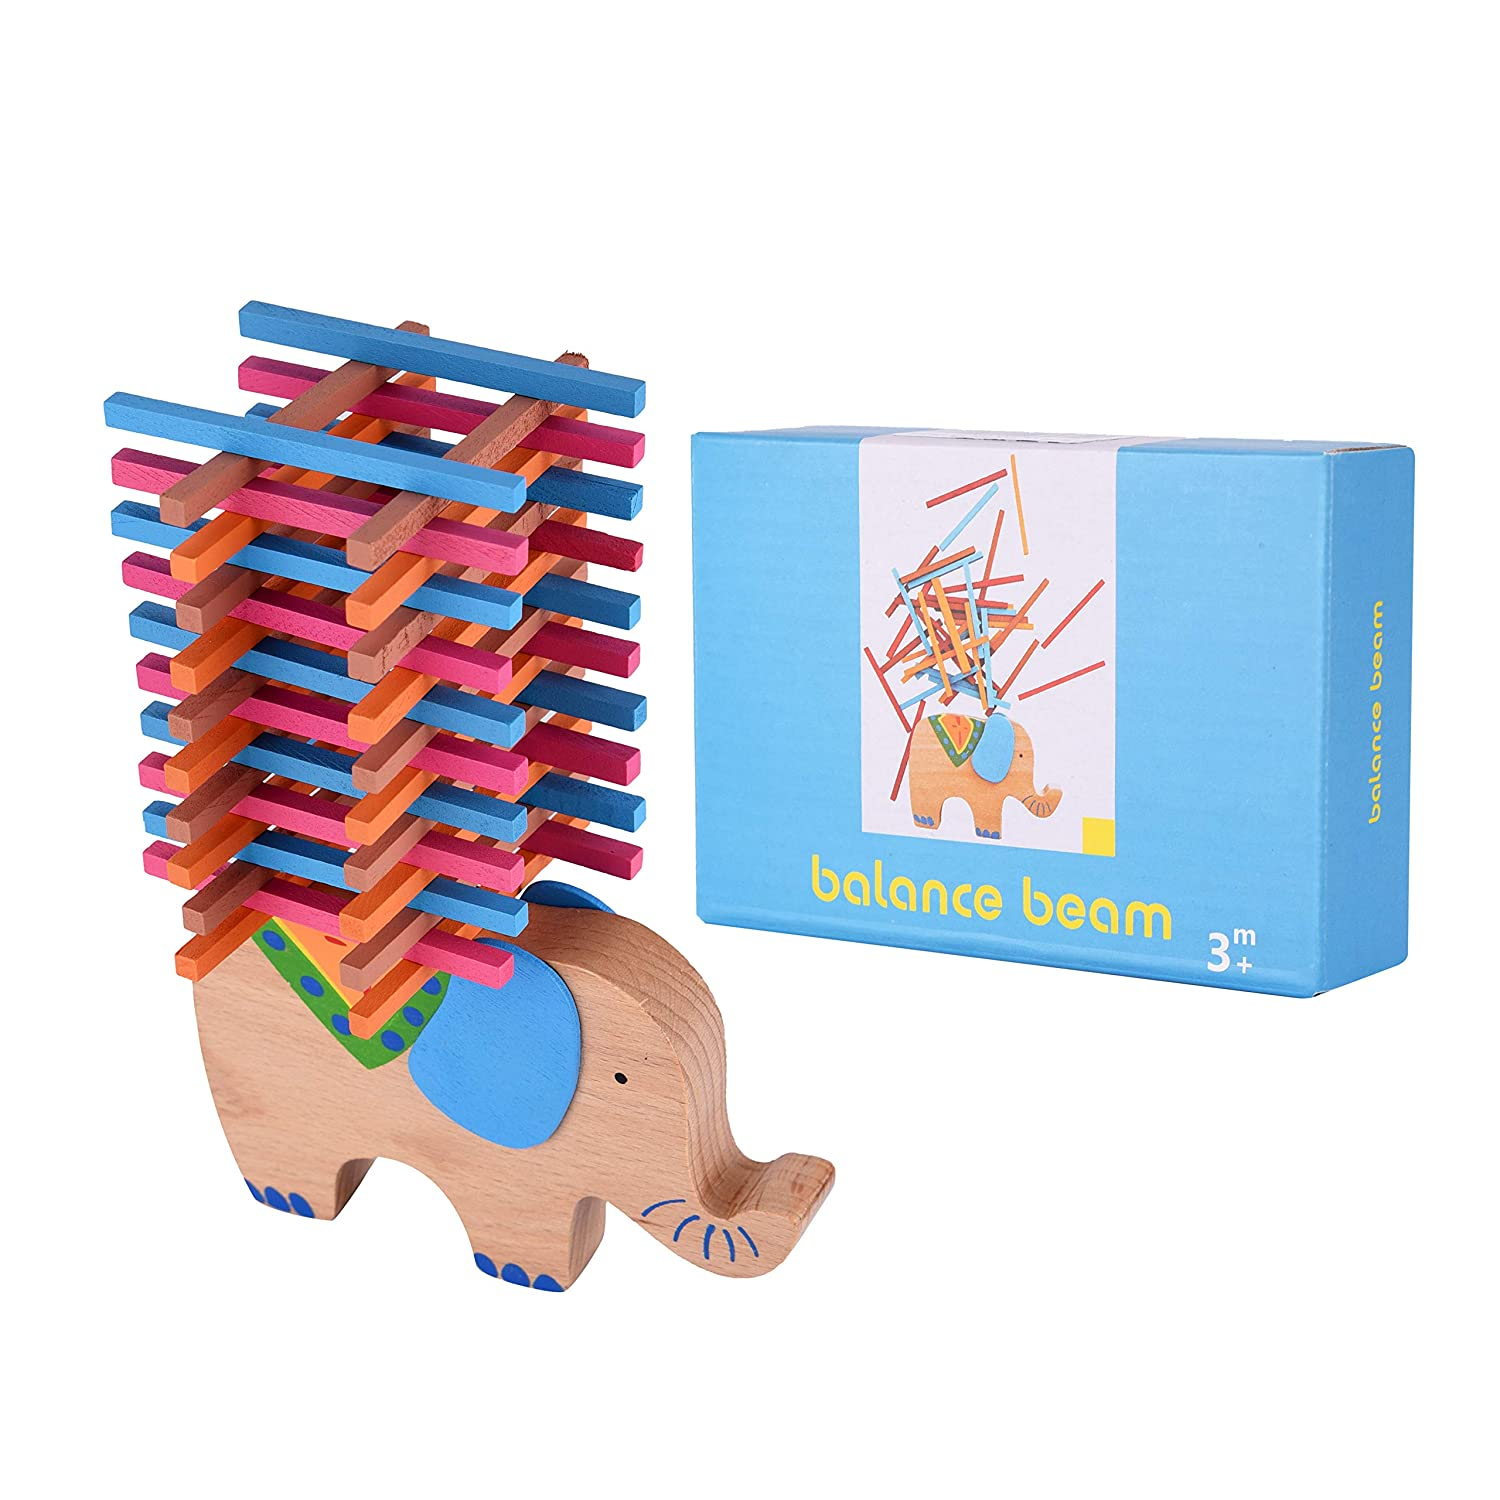 Brown USATDD Wooden Puzzle Stacking Building Blocks Balance Board Table Game Elephant Balancing Toy Educational Gift for Kids 40 Pieces